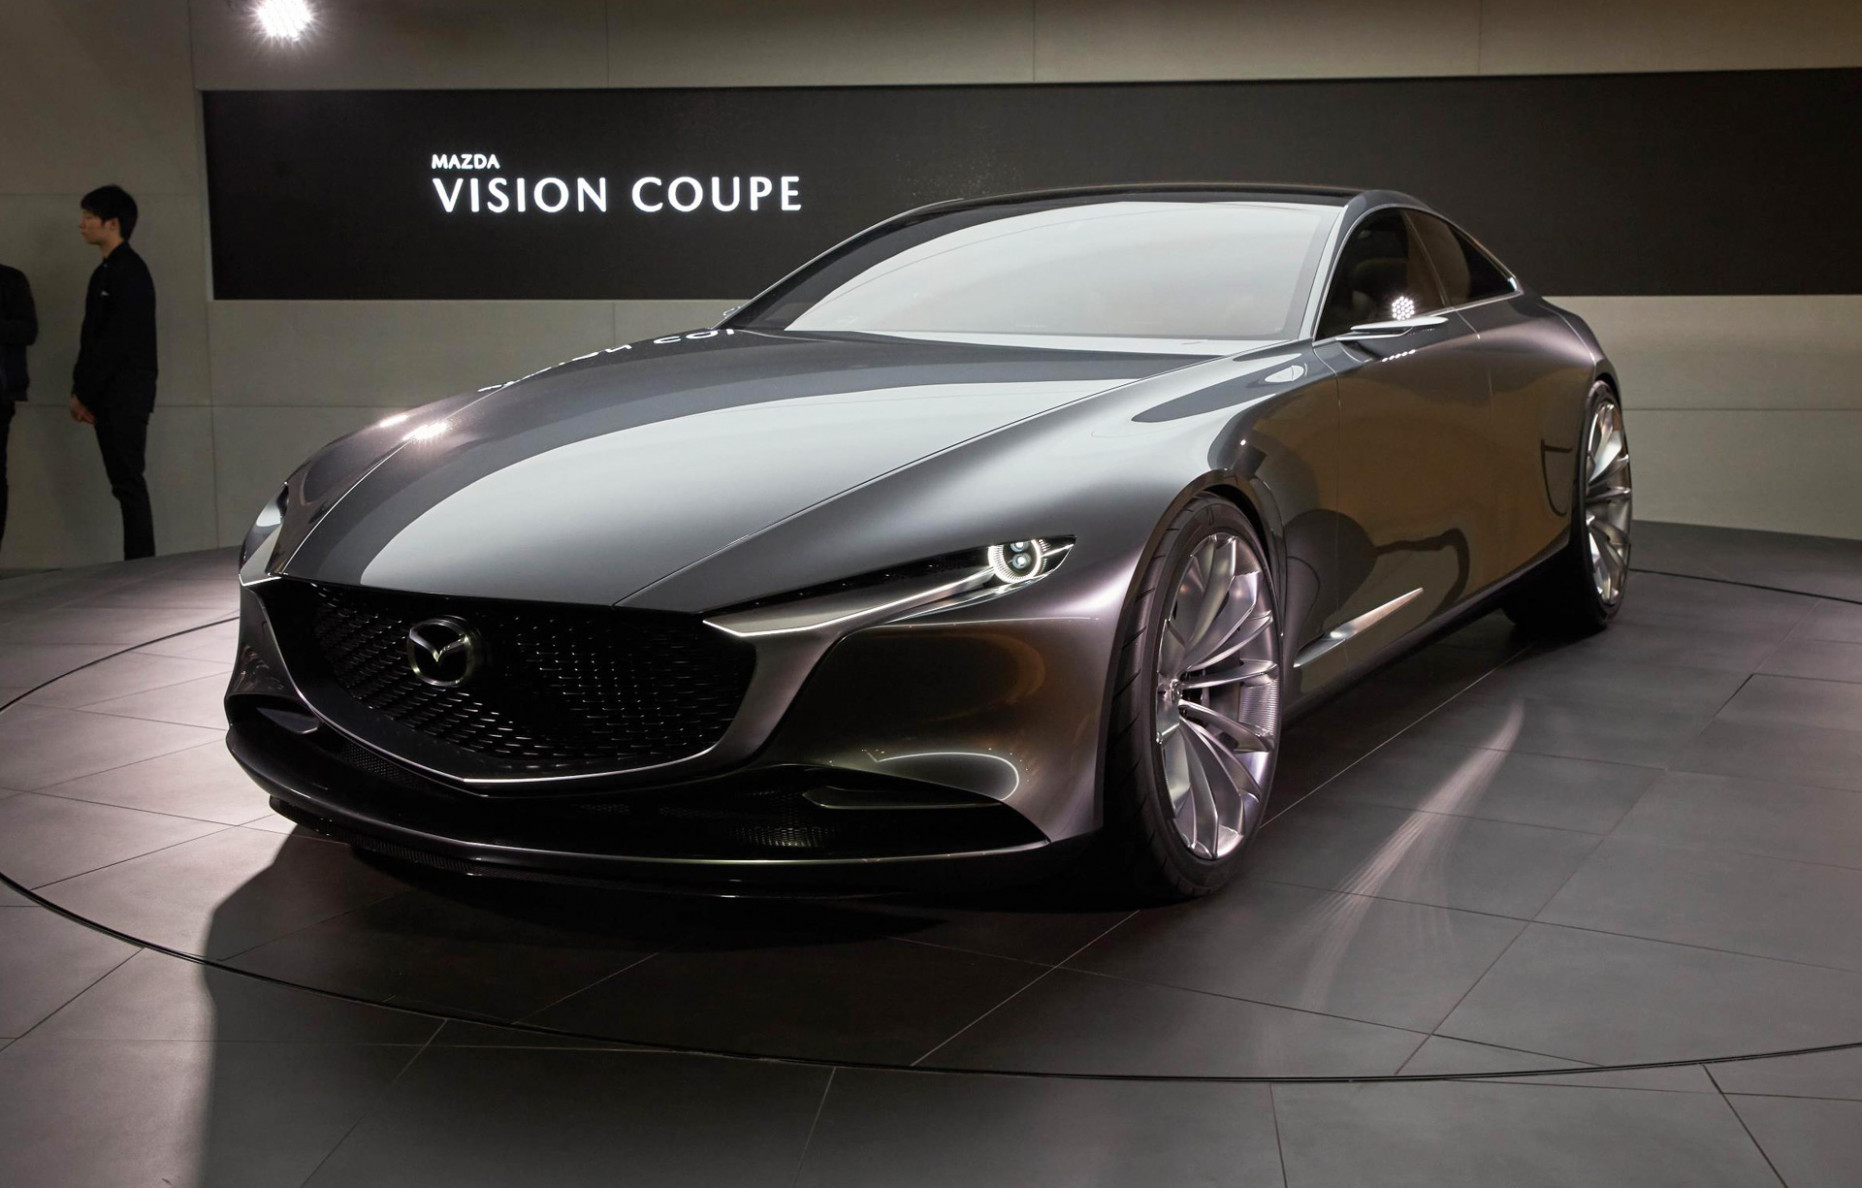 Mazda embraces minimalism with Vision Coupe concept - 2020 mazda vision coupe